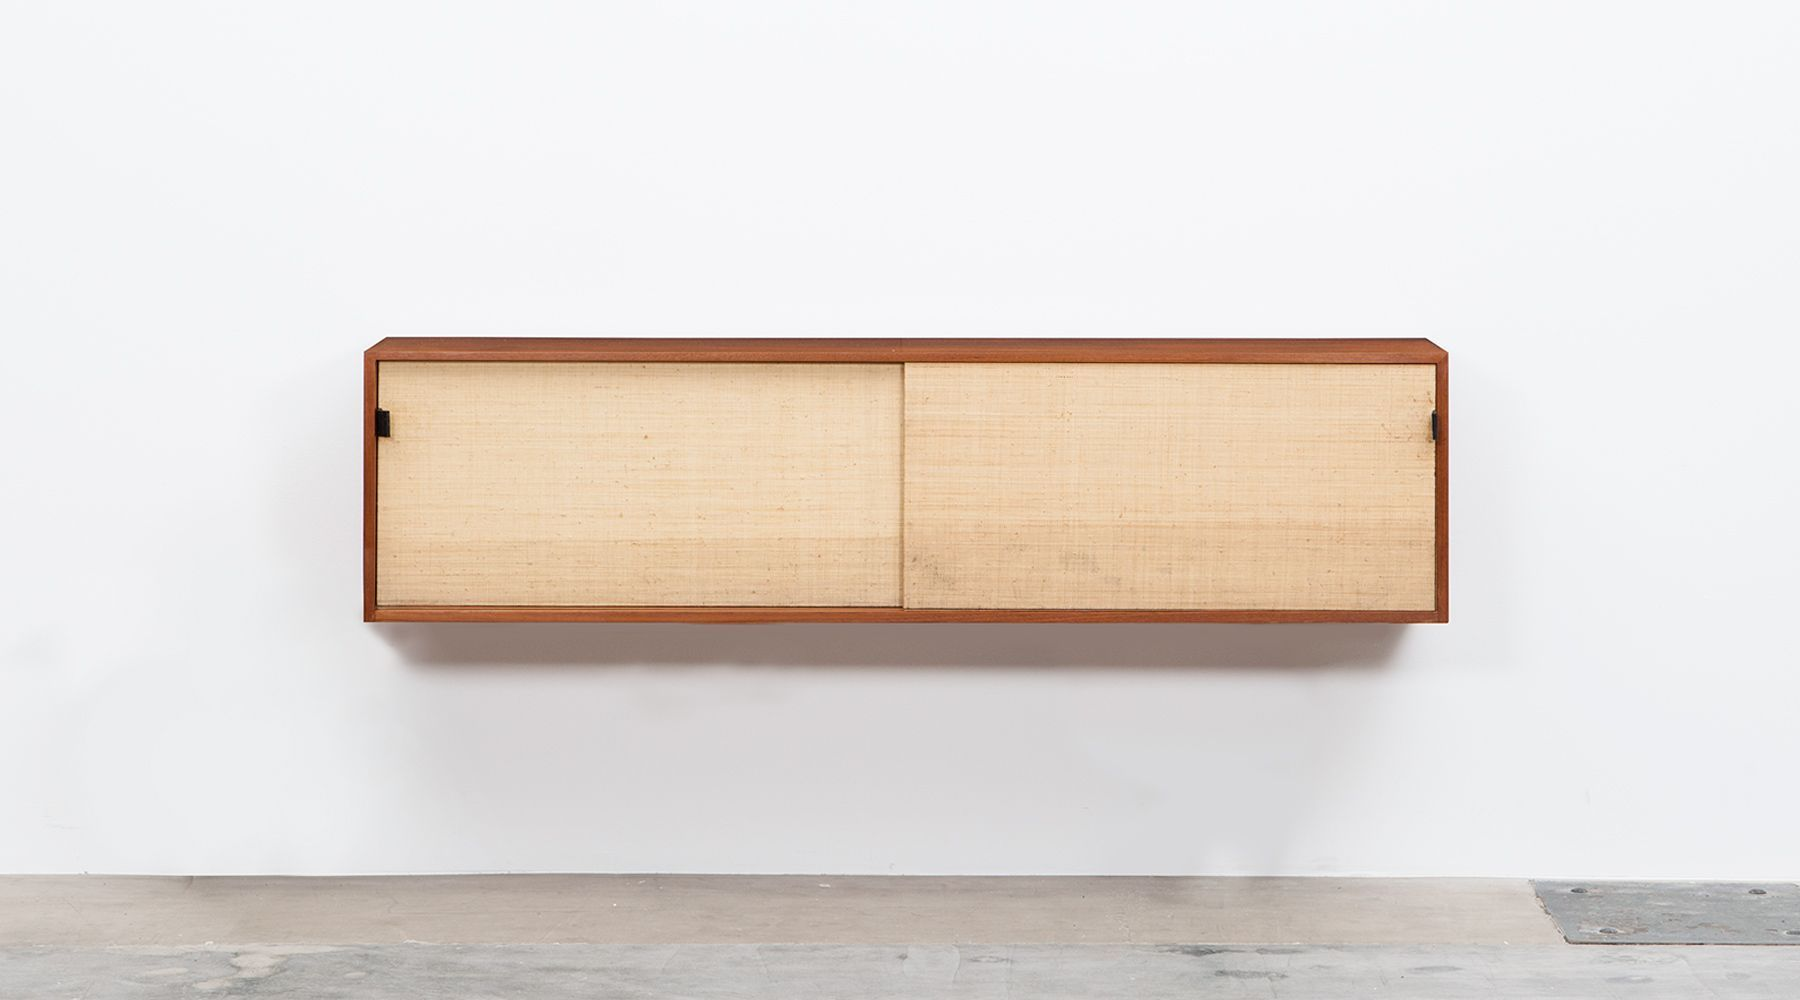 sideboard wall mounted (b)